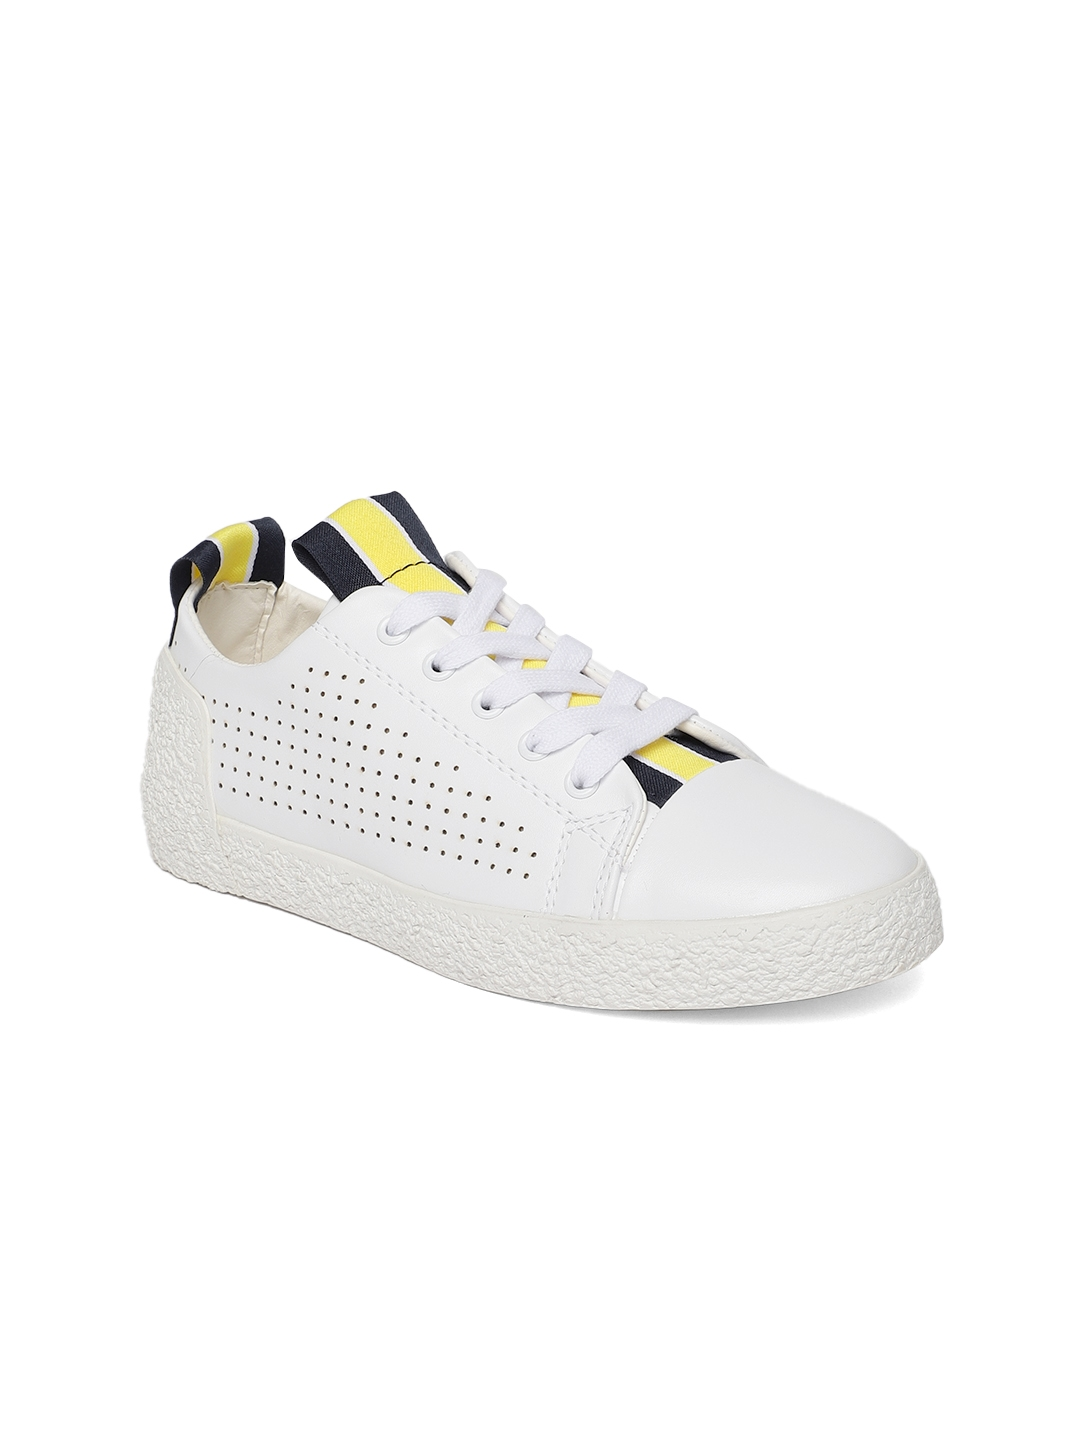 Yellow Sneakers - Casual Shoes